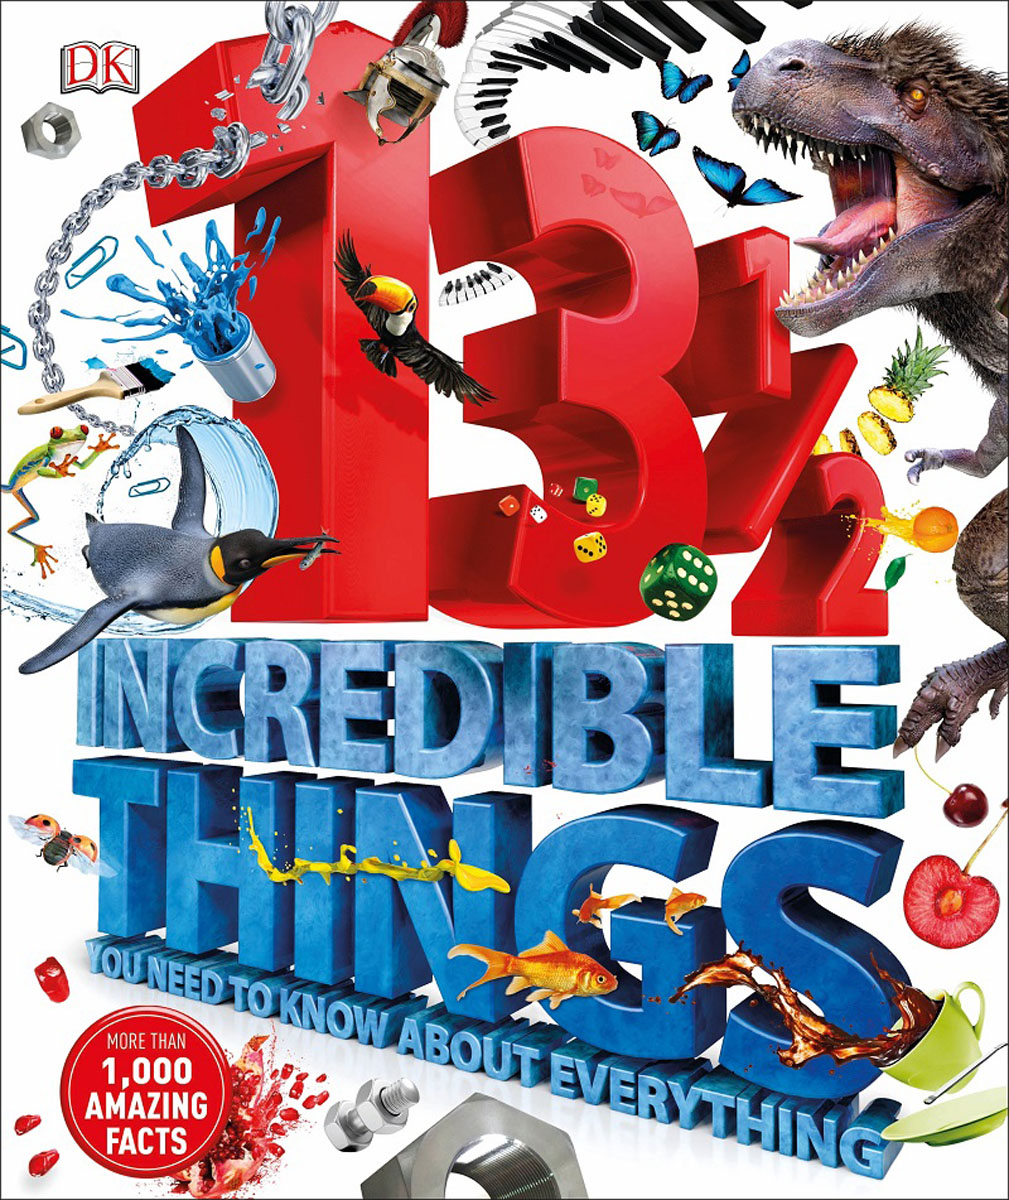 13? Incredible Things You Need to Know About Everything about you кардиган